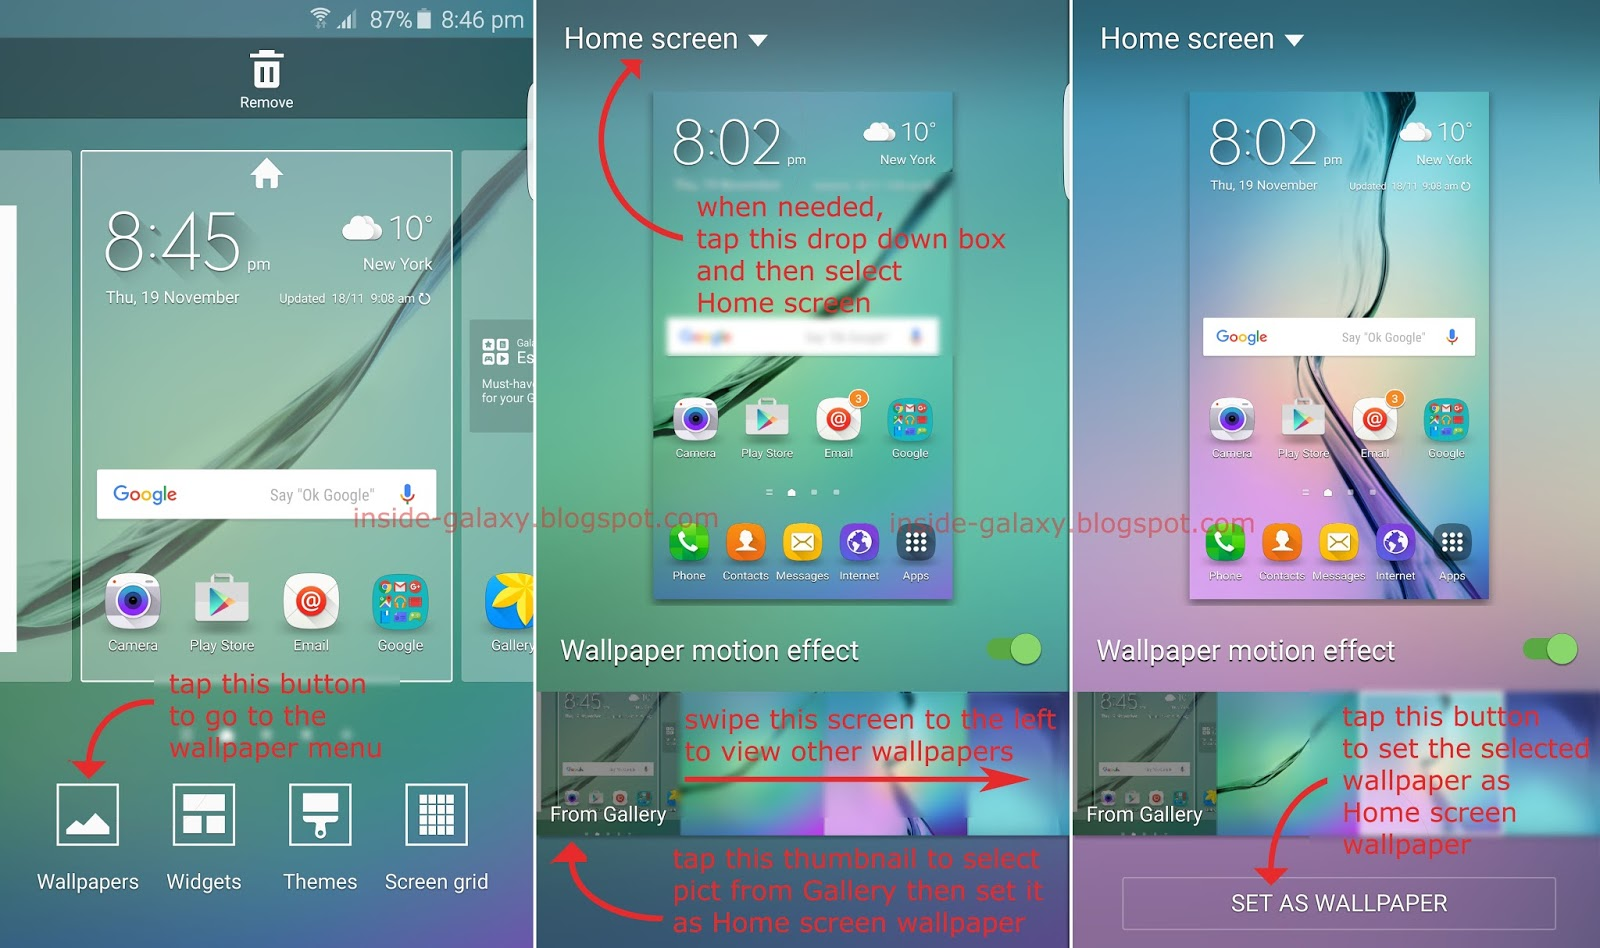 Samsung Galaxy S6 Edge How To Change Home Screen Wallpaper In